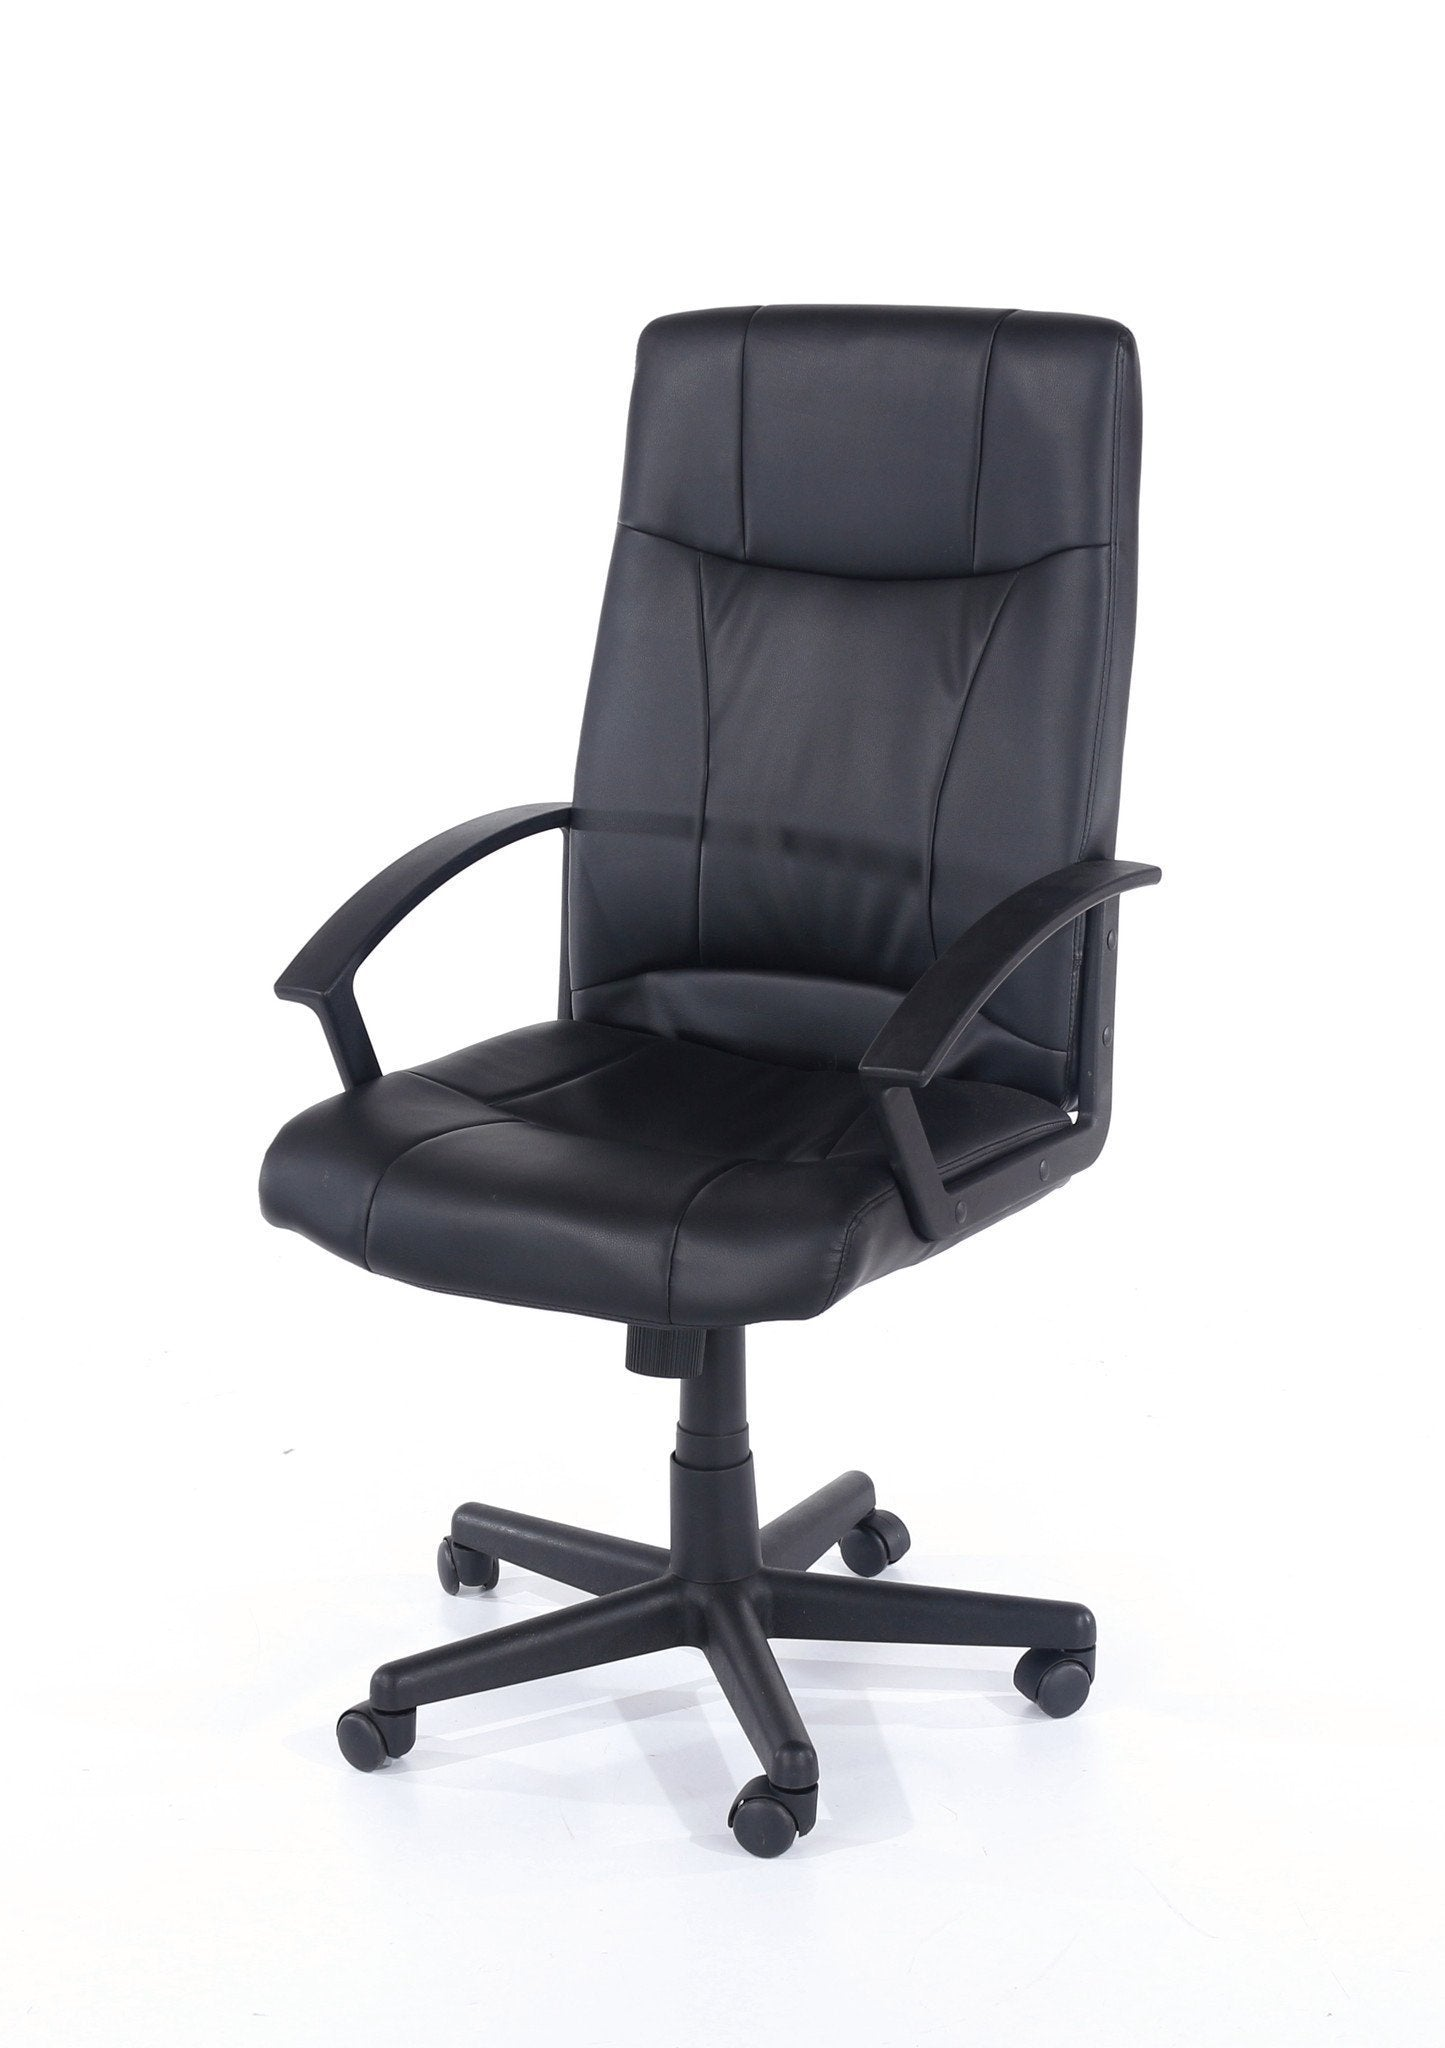 Henry Executive Office Chair High Back-executive office chair-core products-GoFurn Furniture Store Kent